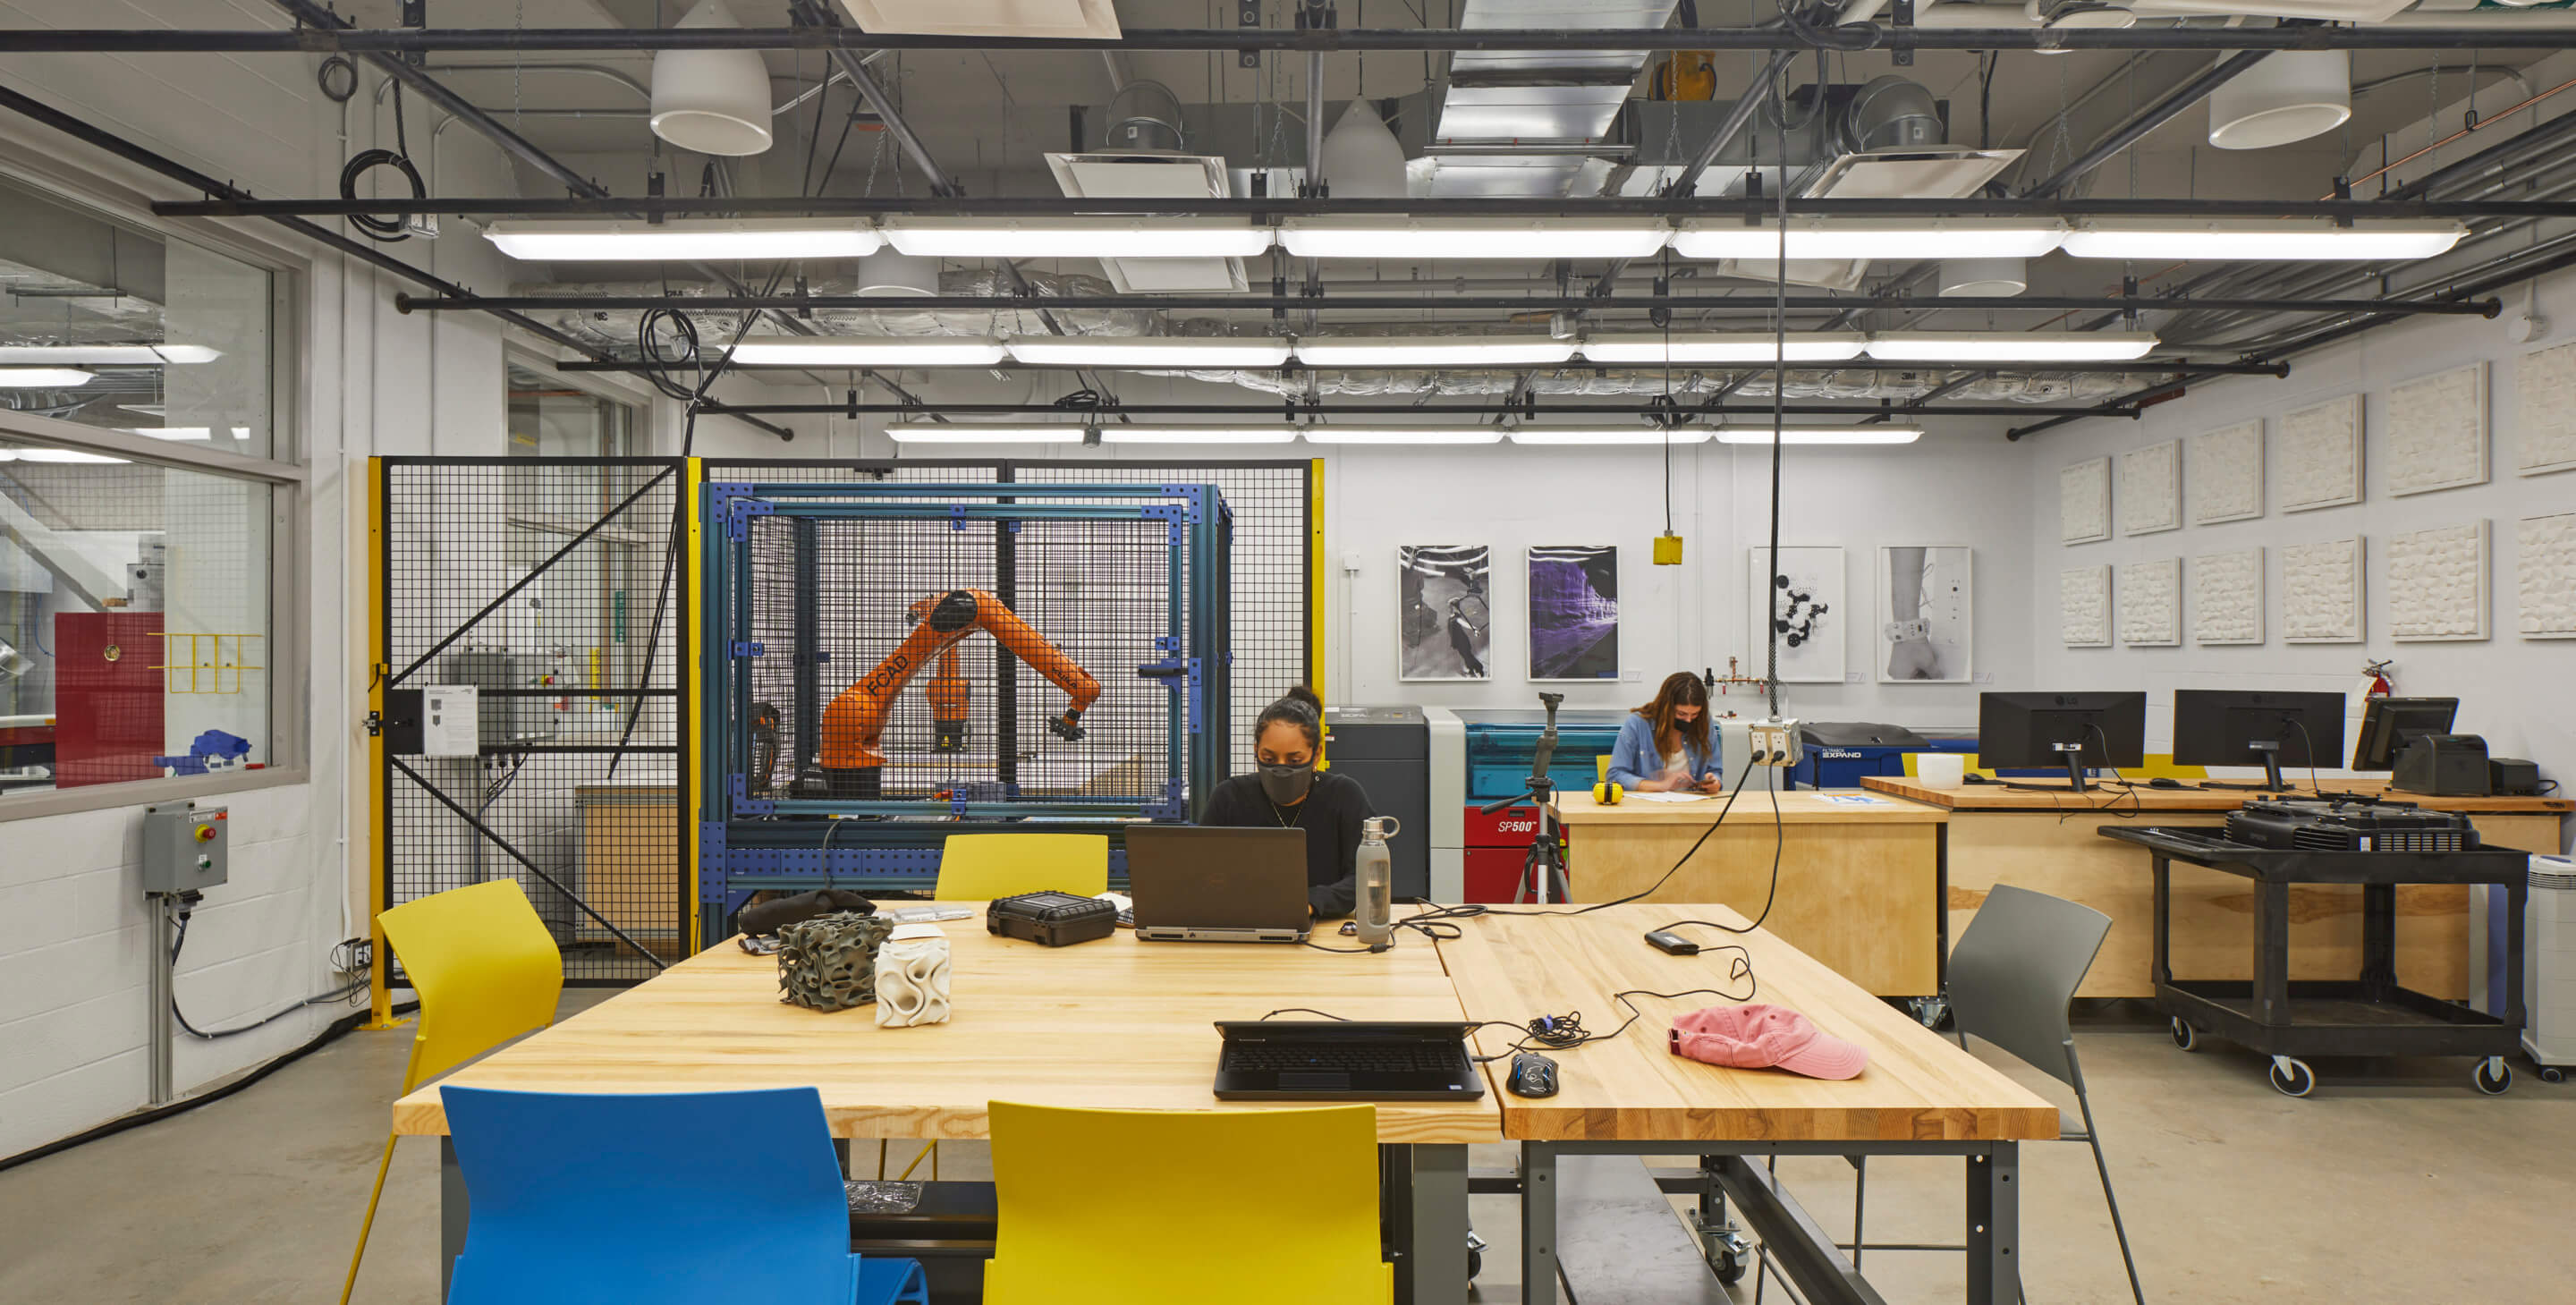 A ground level fab lab with robot arm